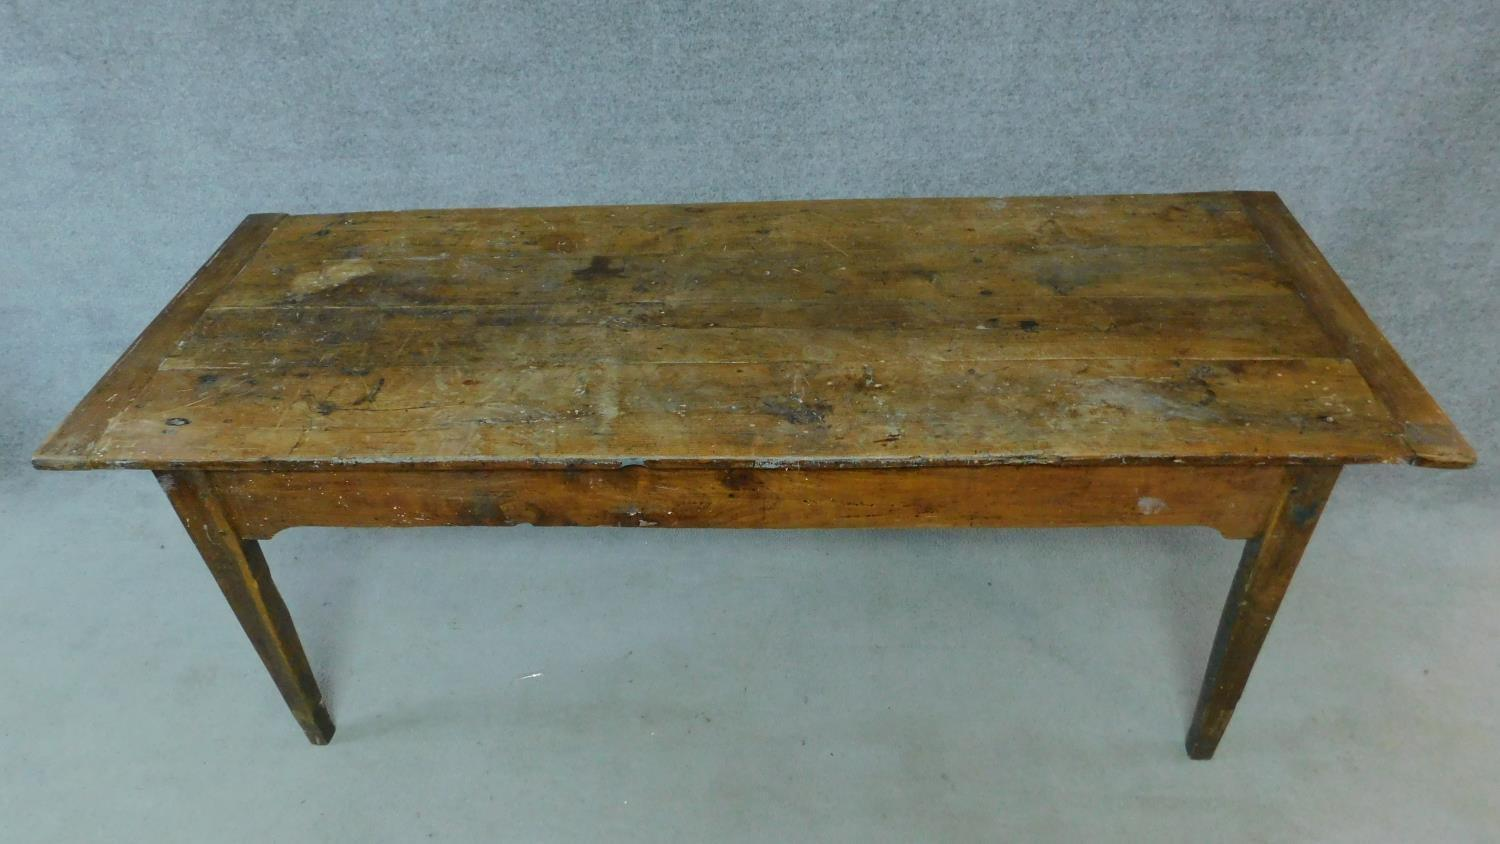 An antique oak planked top refectory dining table with cleated ends and twin end drawers on square - Image 2 of 6